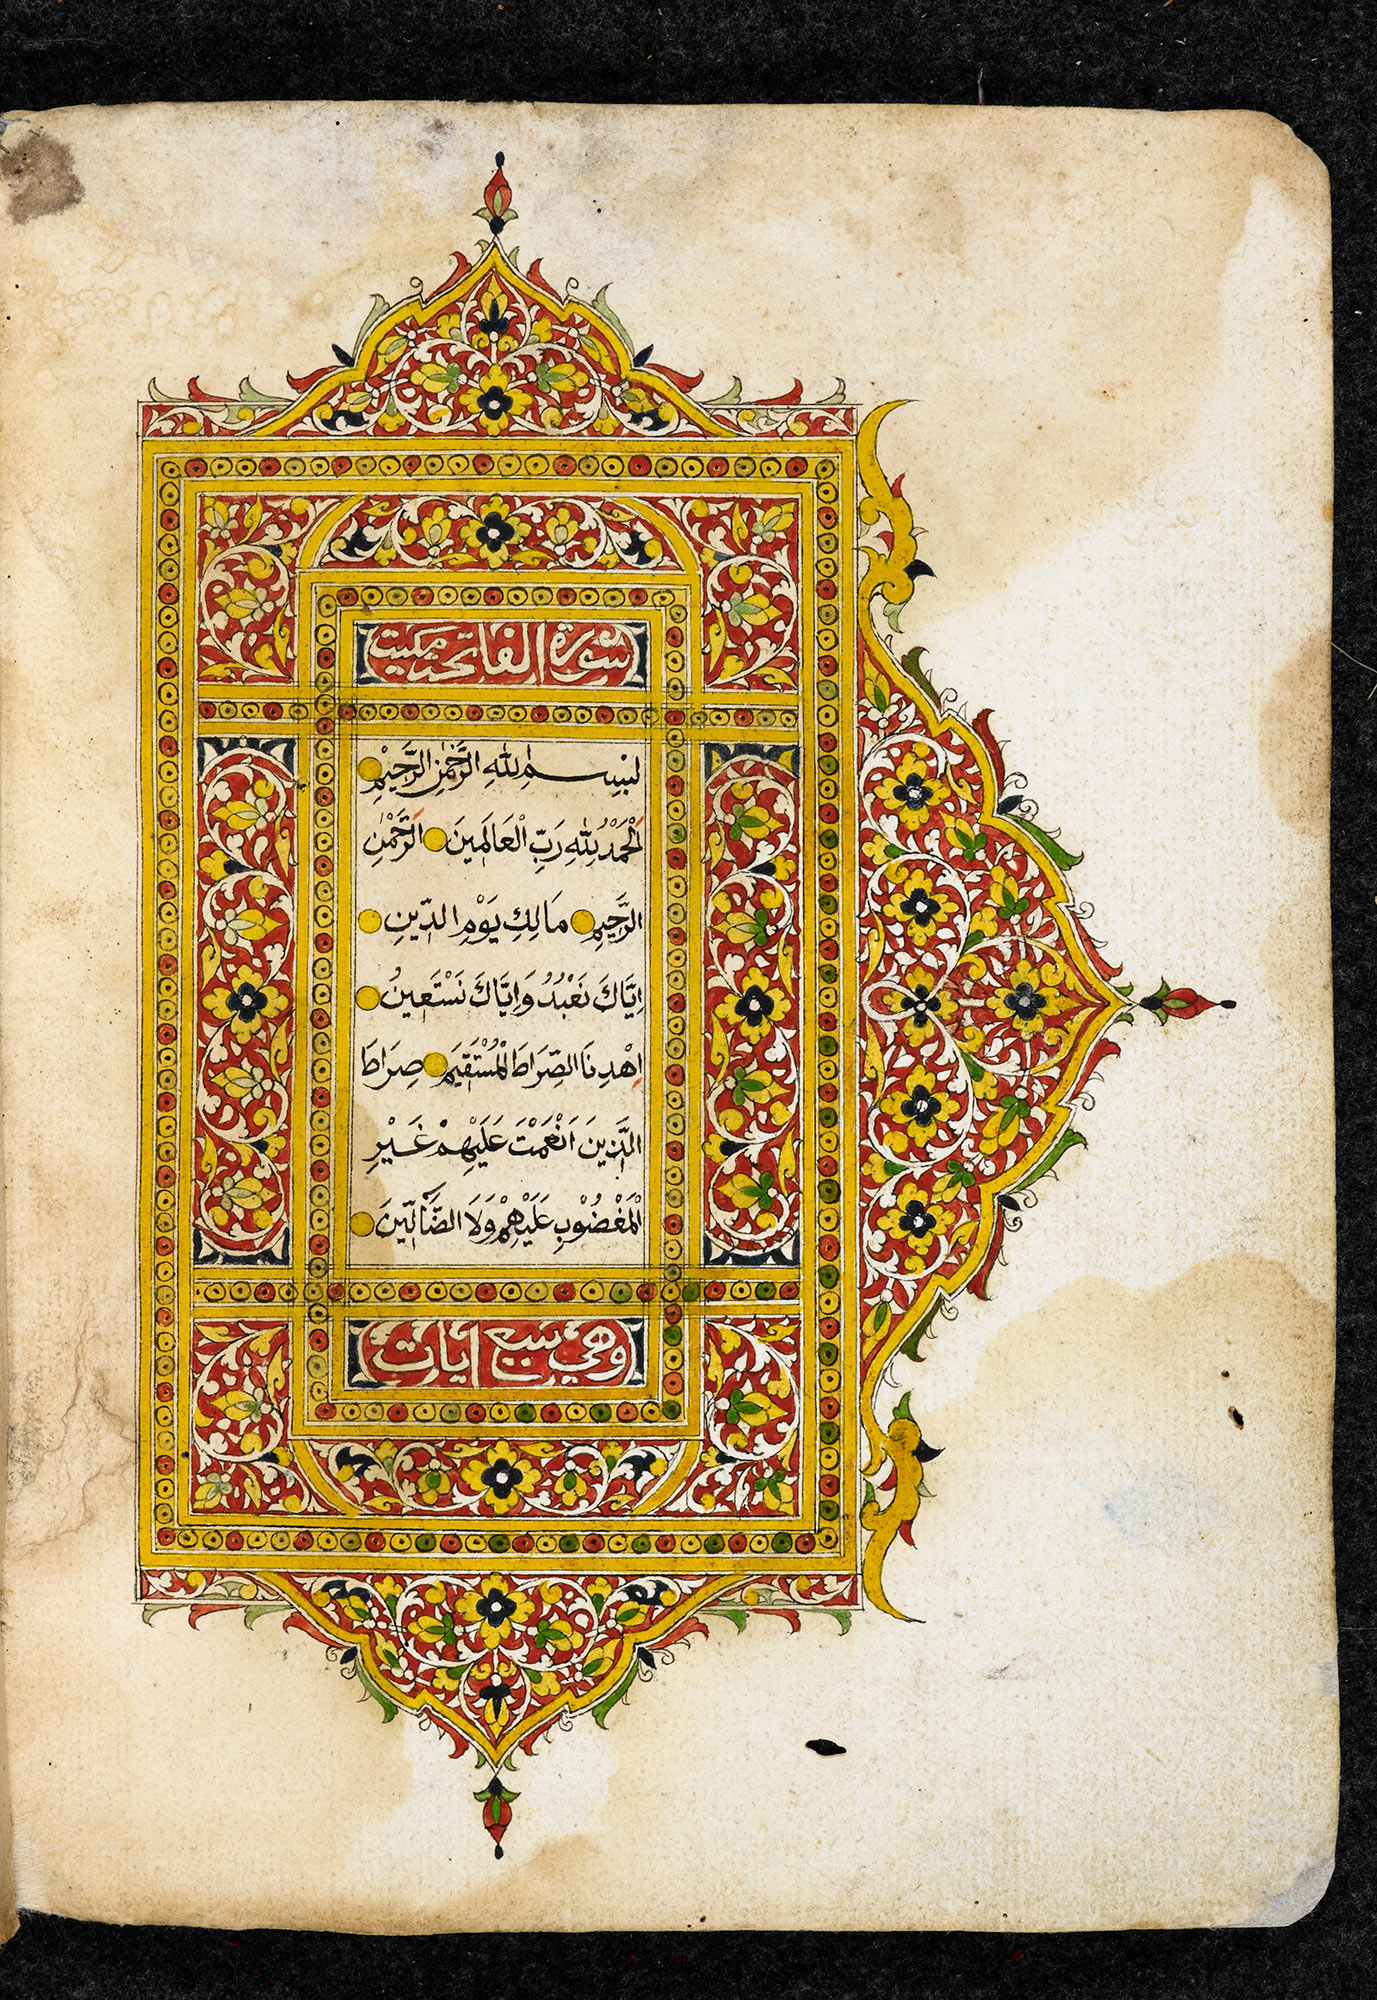 Qur'an manuscript from the Malay peninsula